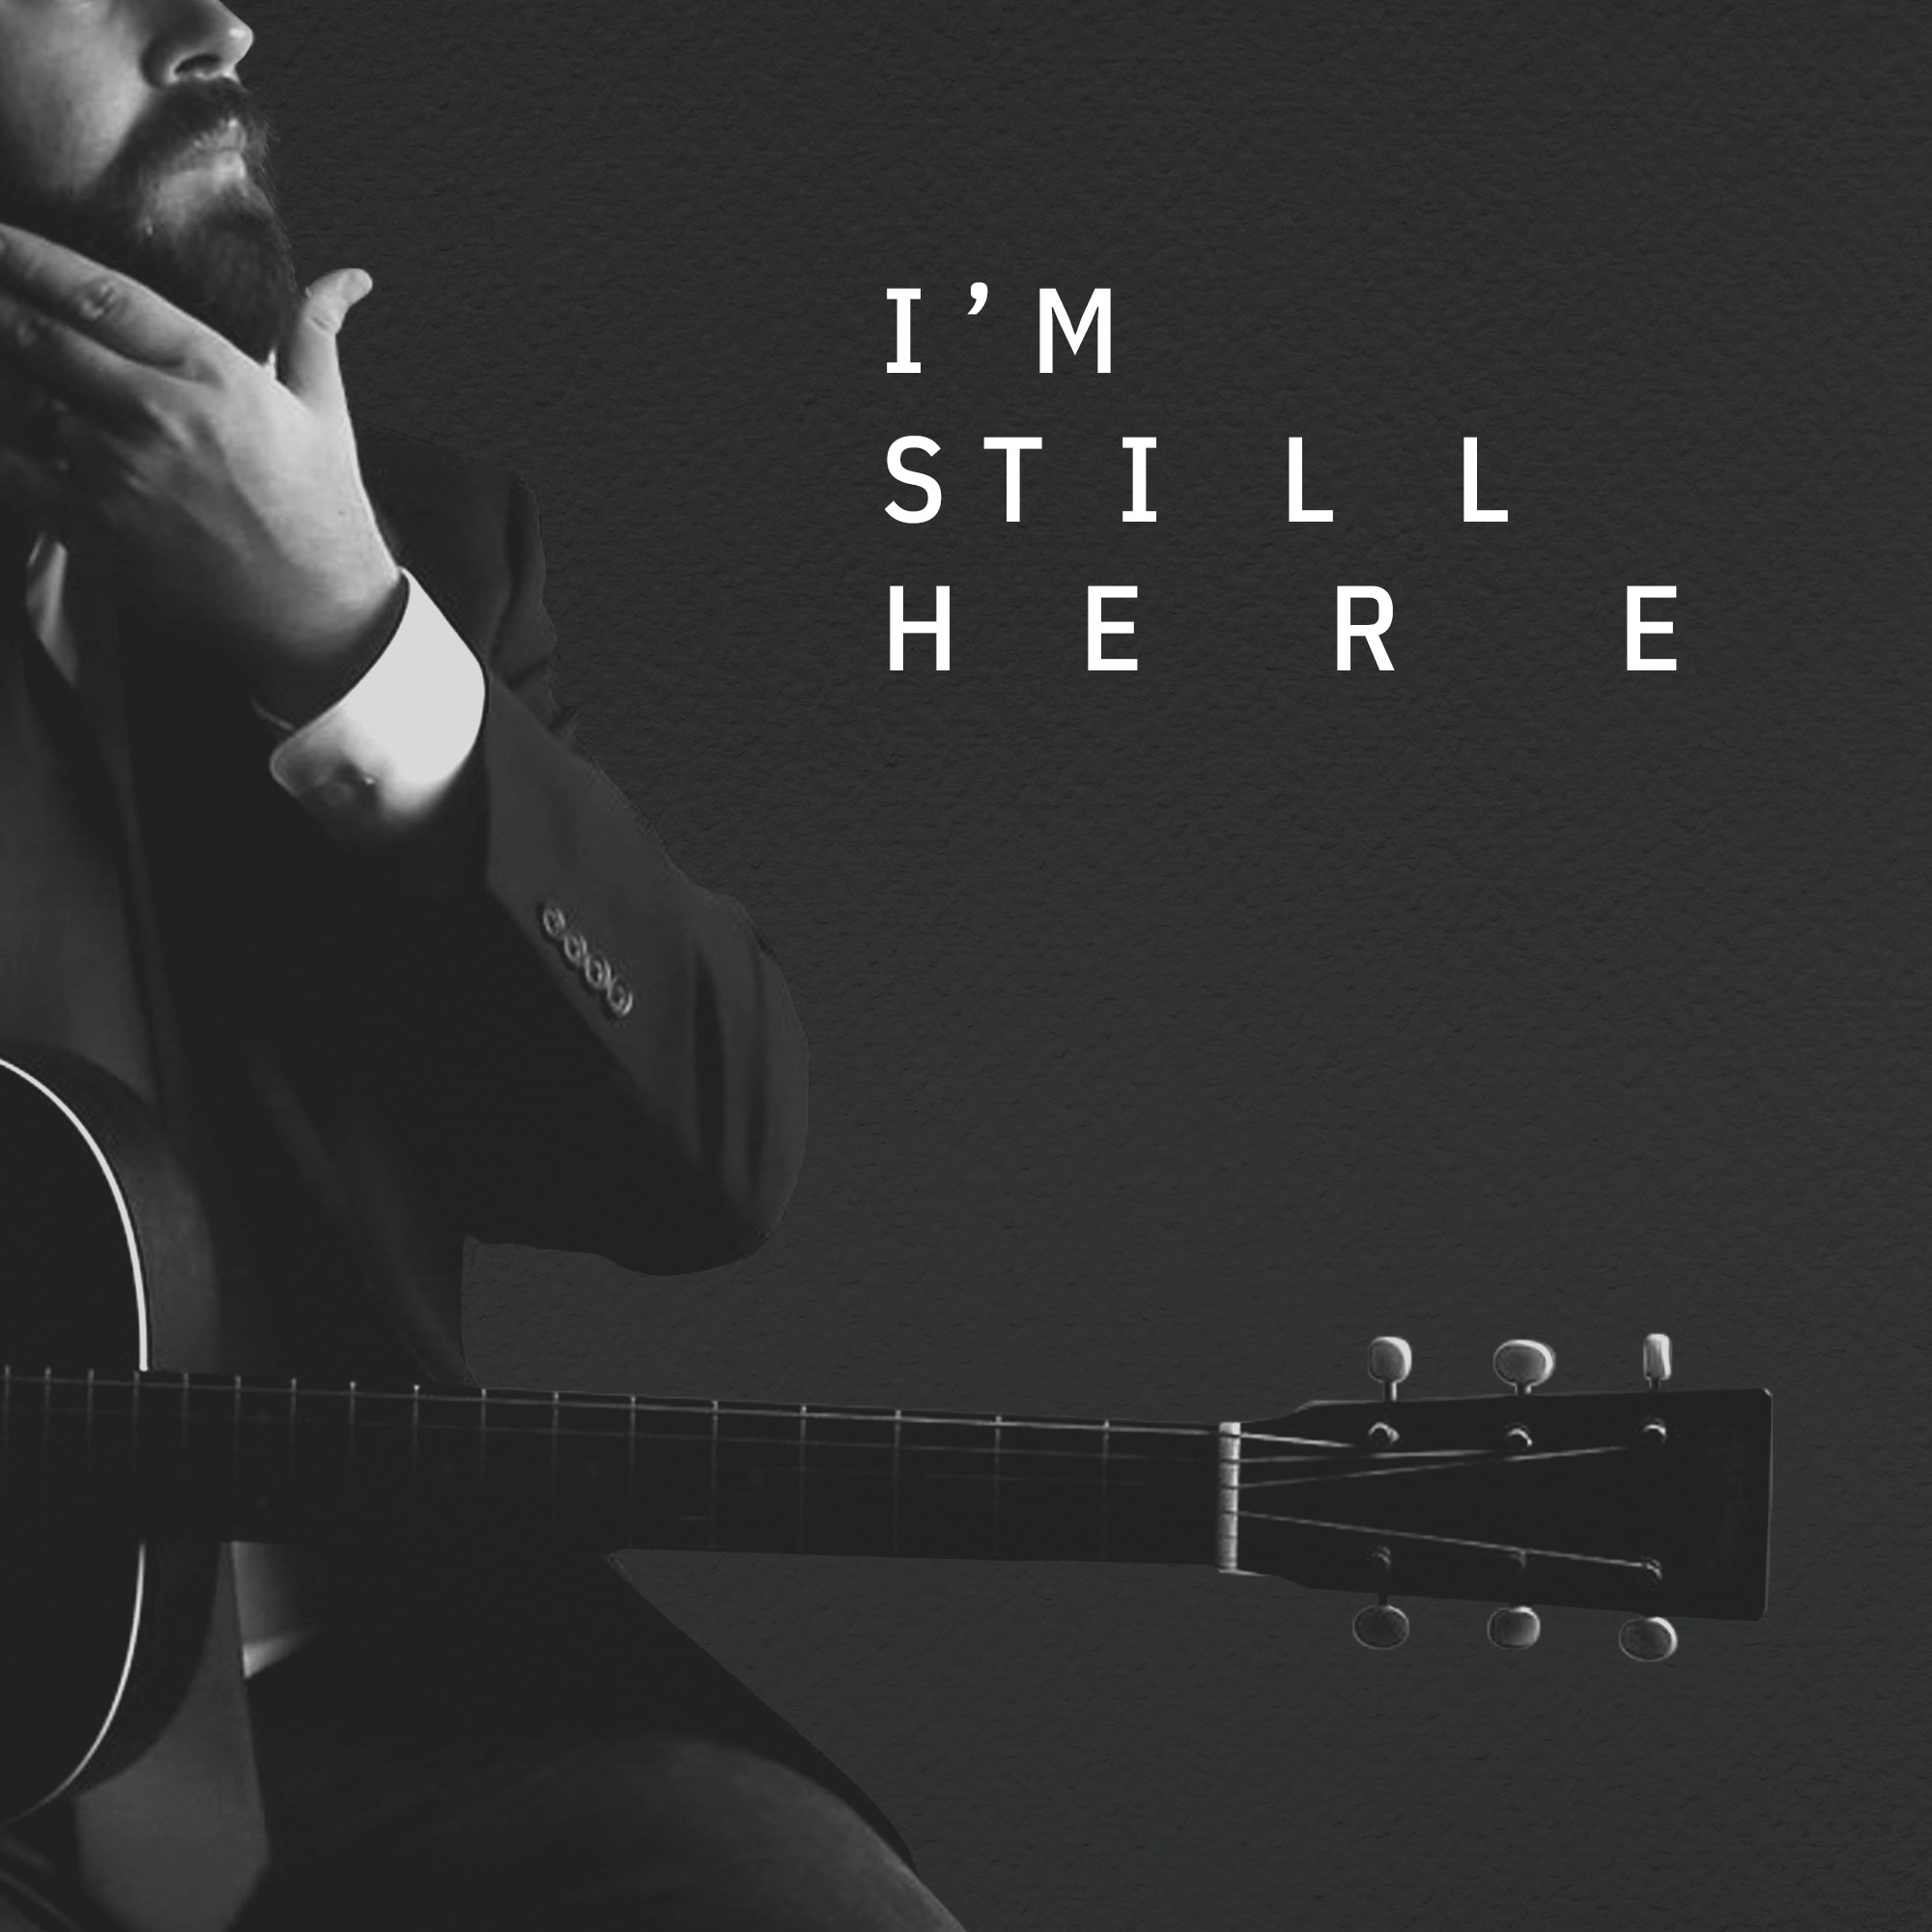 I'm Still Here - song by Craig Haller